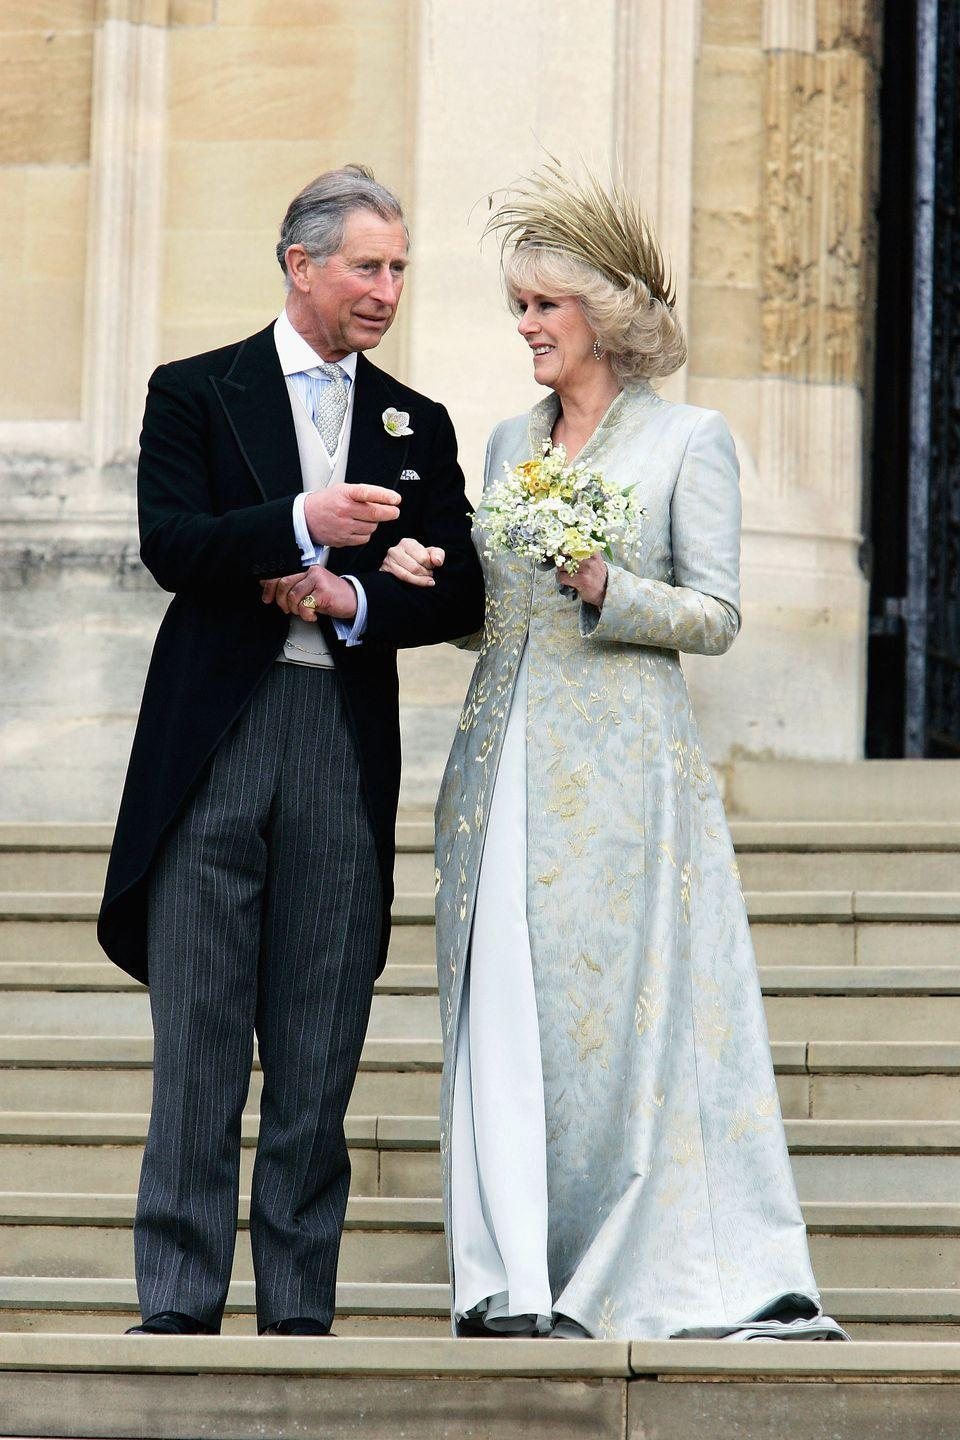 <p>Camilla, Duchess of Cornwall, wore a blue-gold dress coat by Robinson Valentine, which was inspired by her mother's jewelry, for her exchanging of vows with Prince Charles. She wore a headpiece by Philip Treacy. </p>